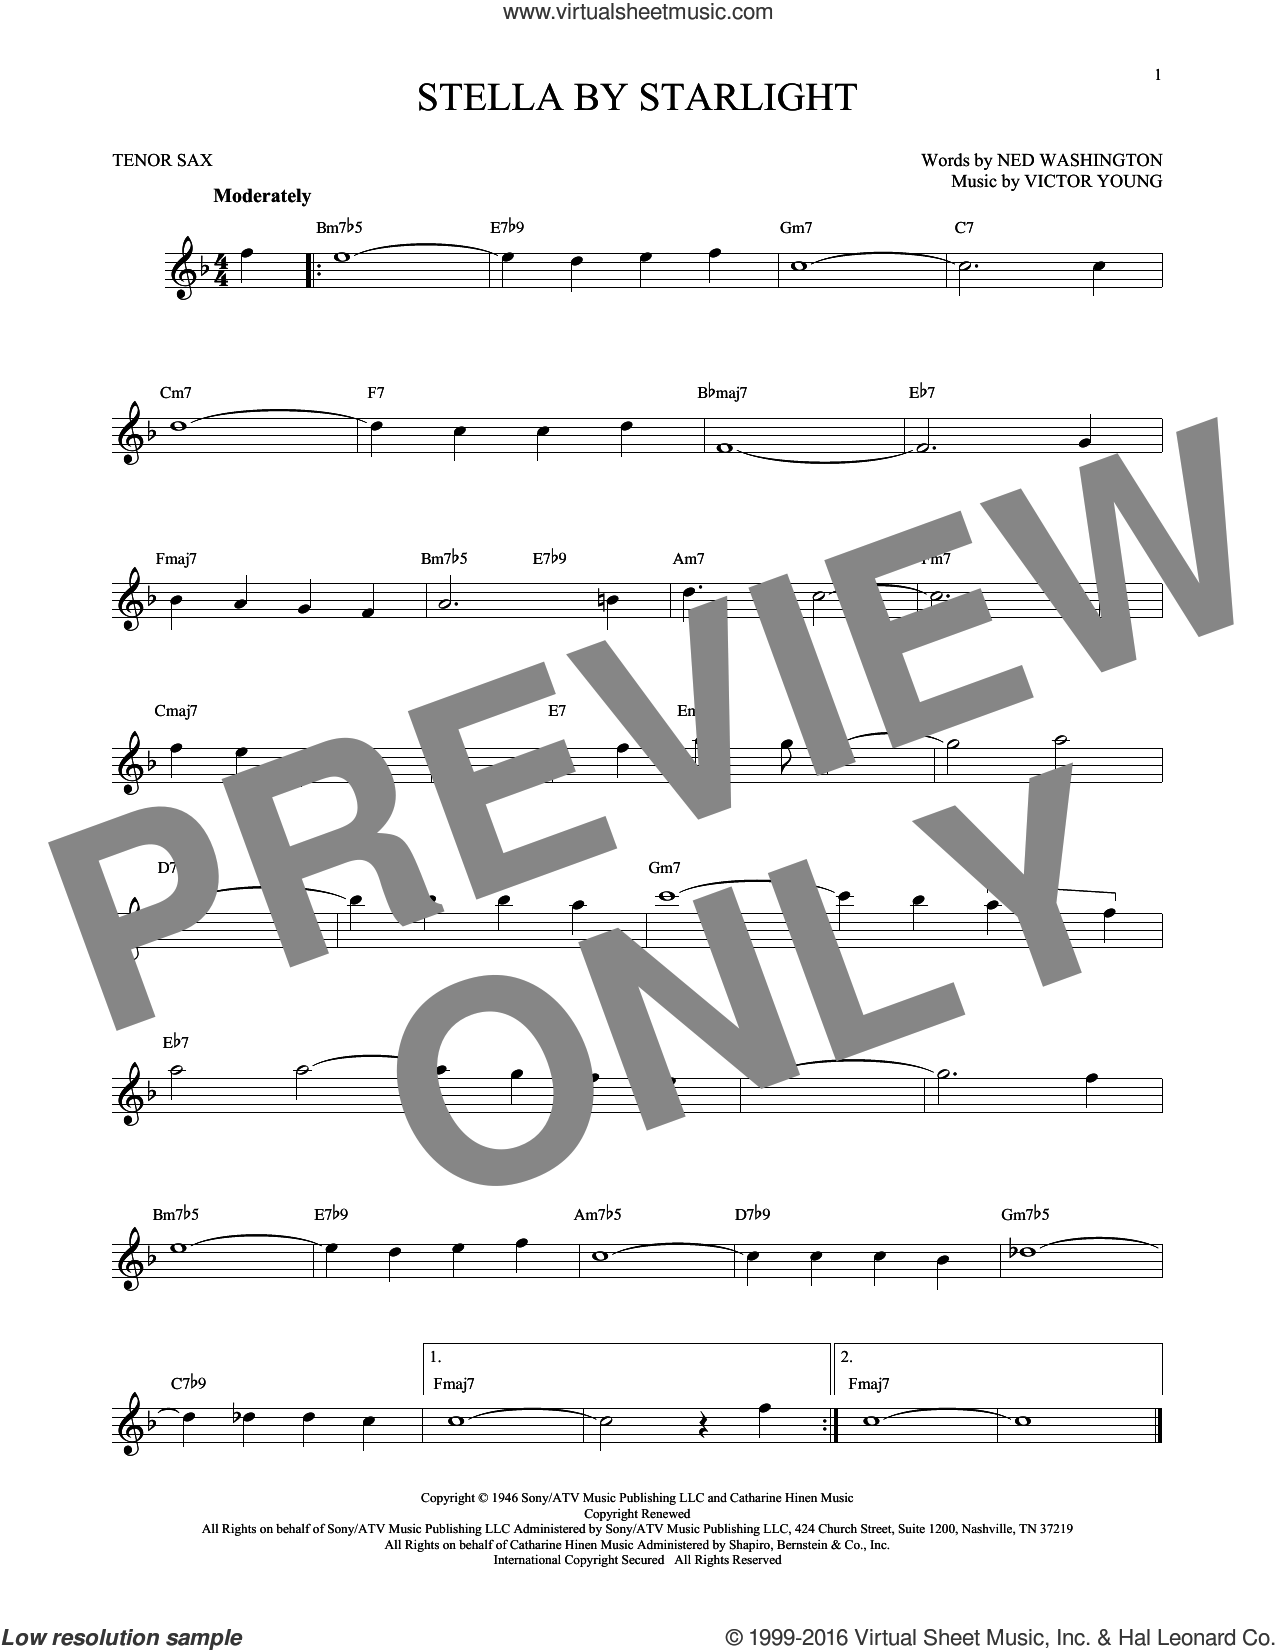 Stella By Starlight sheet music for tenor saxophone solo by Ned Washington, Ray Charles and Victor Young, intermediate skill level